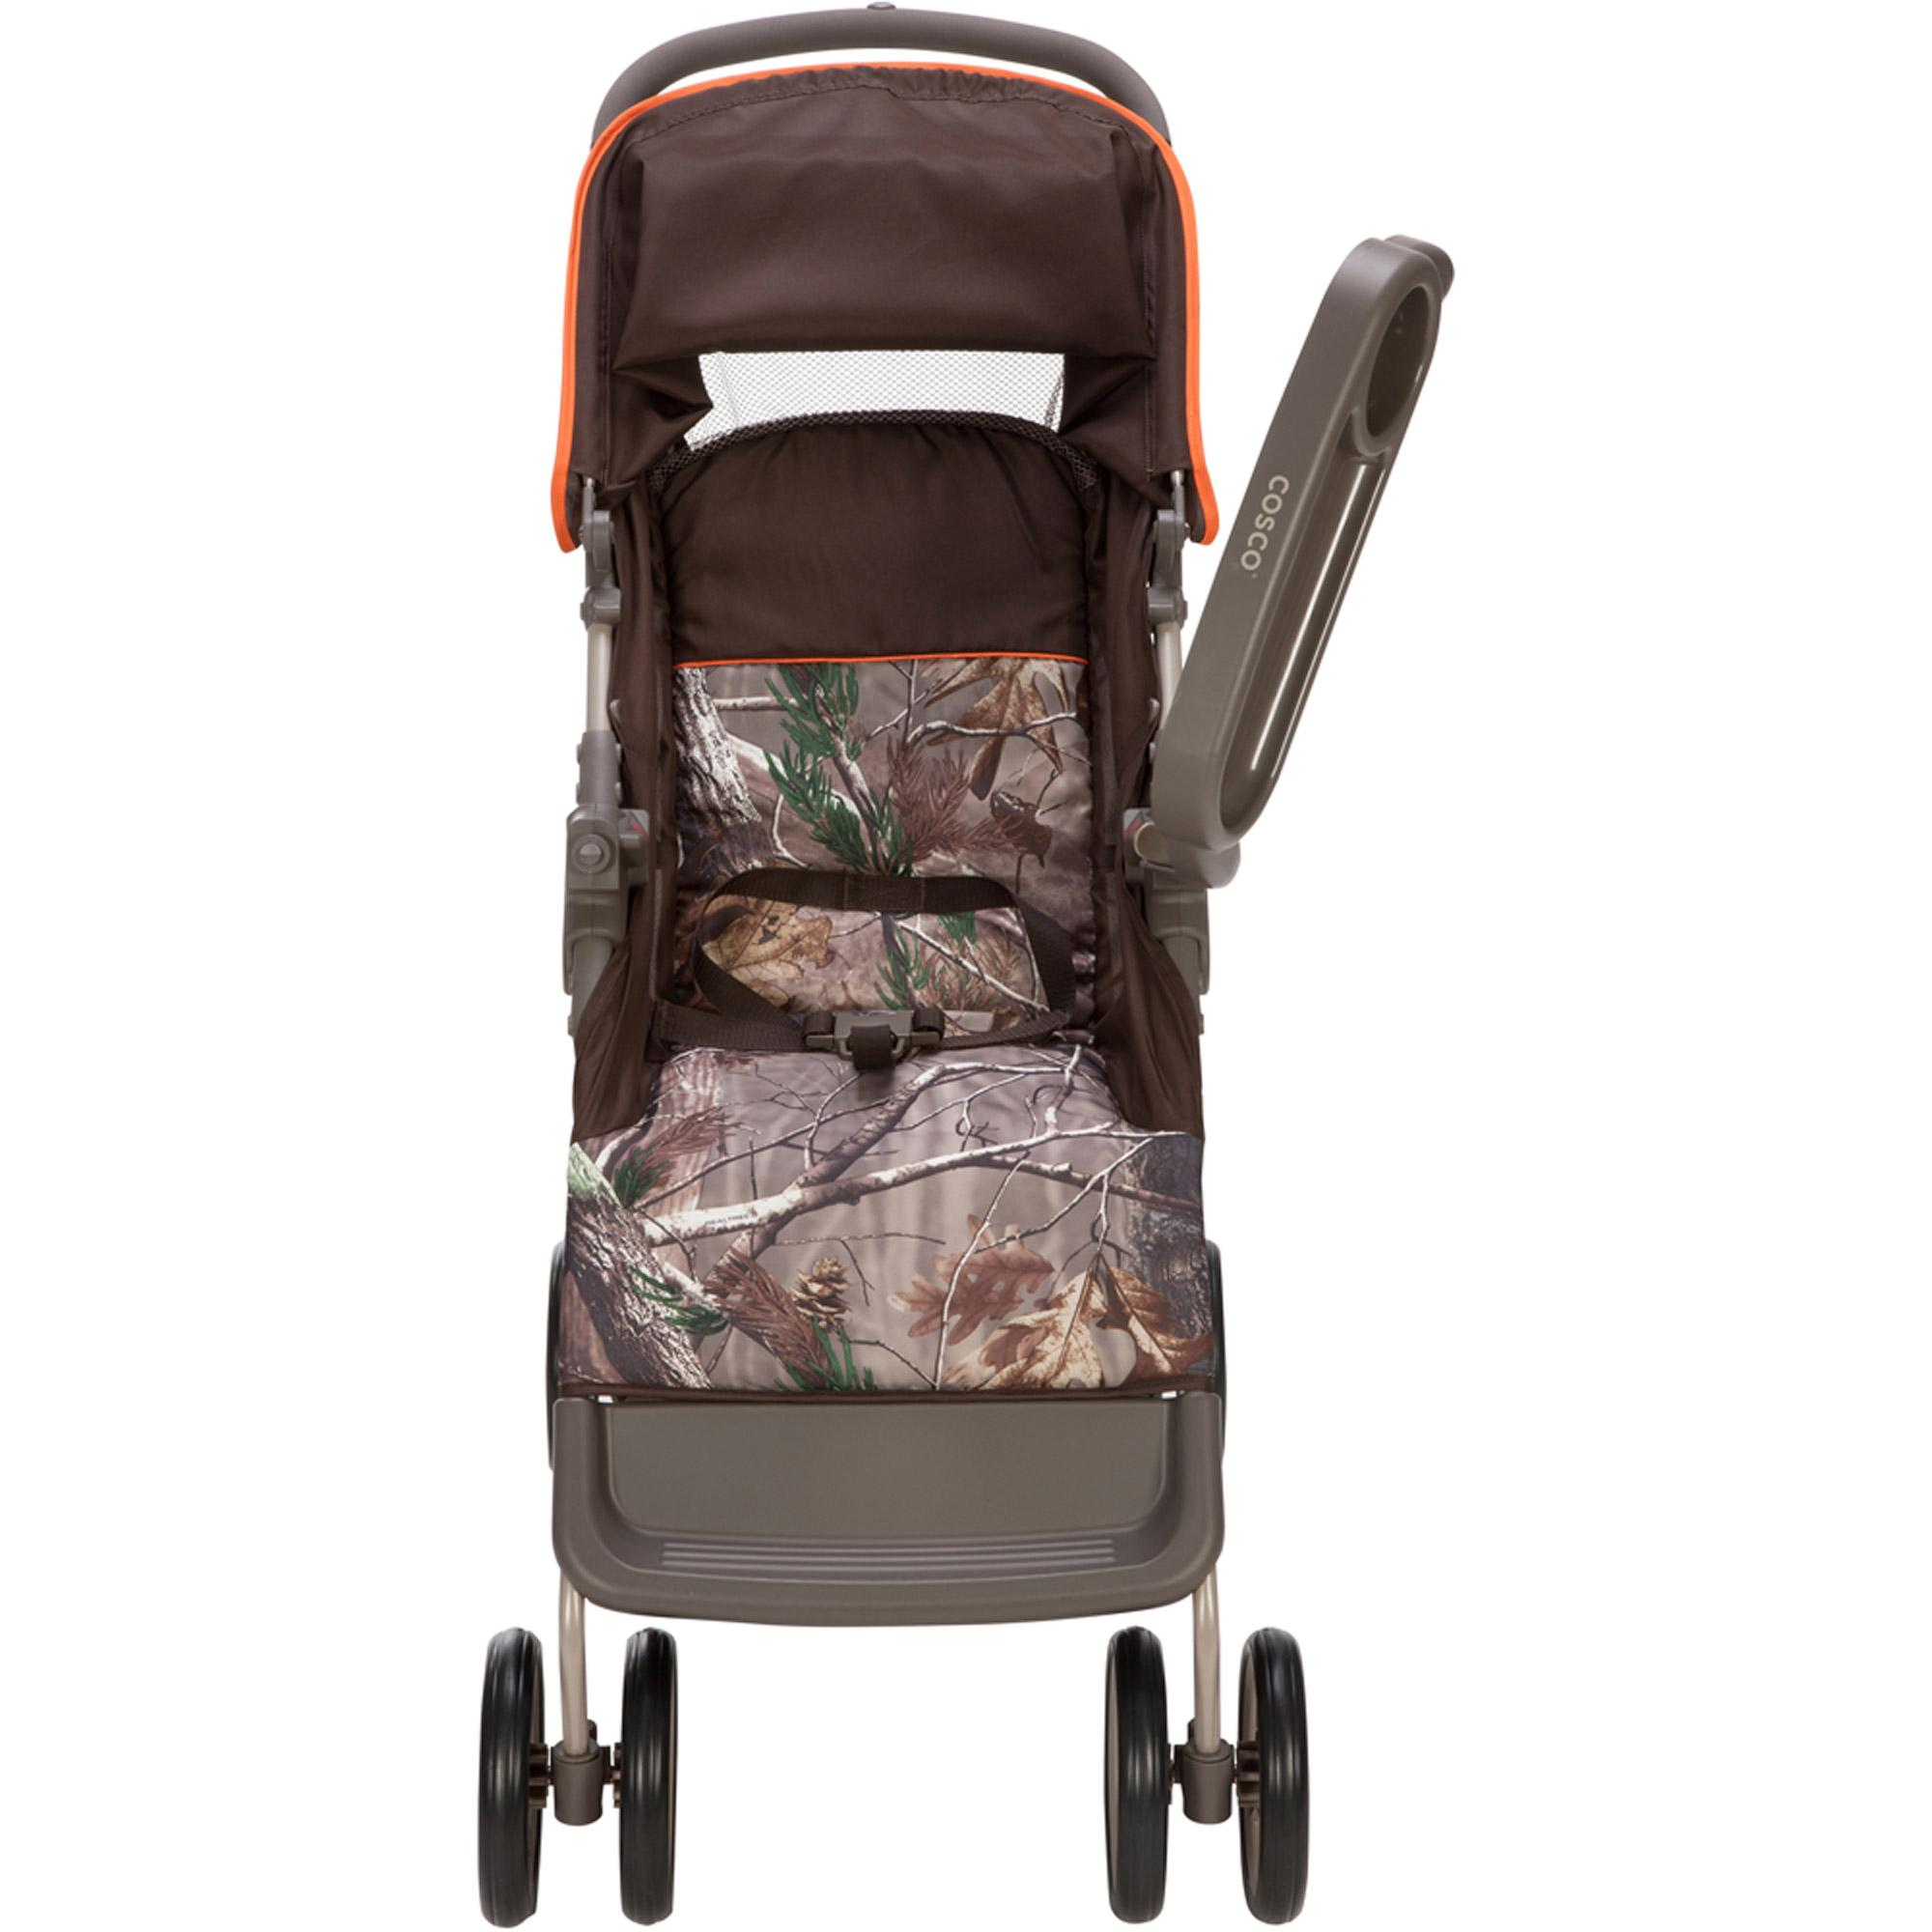 Cosco Lift And Stroll Travel System Realtree Orange